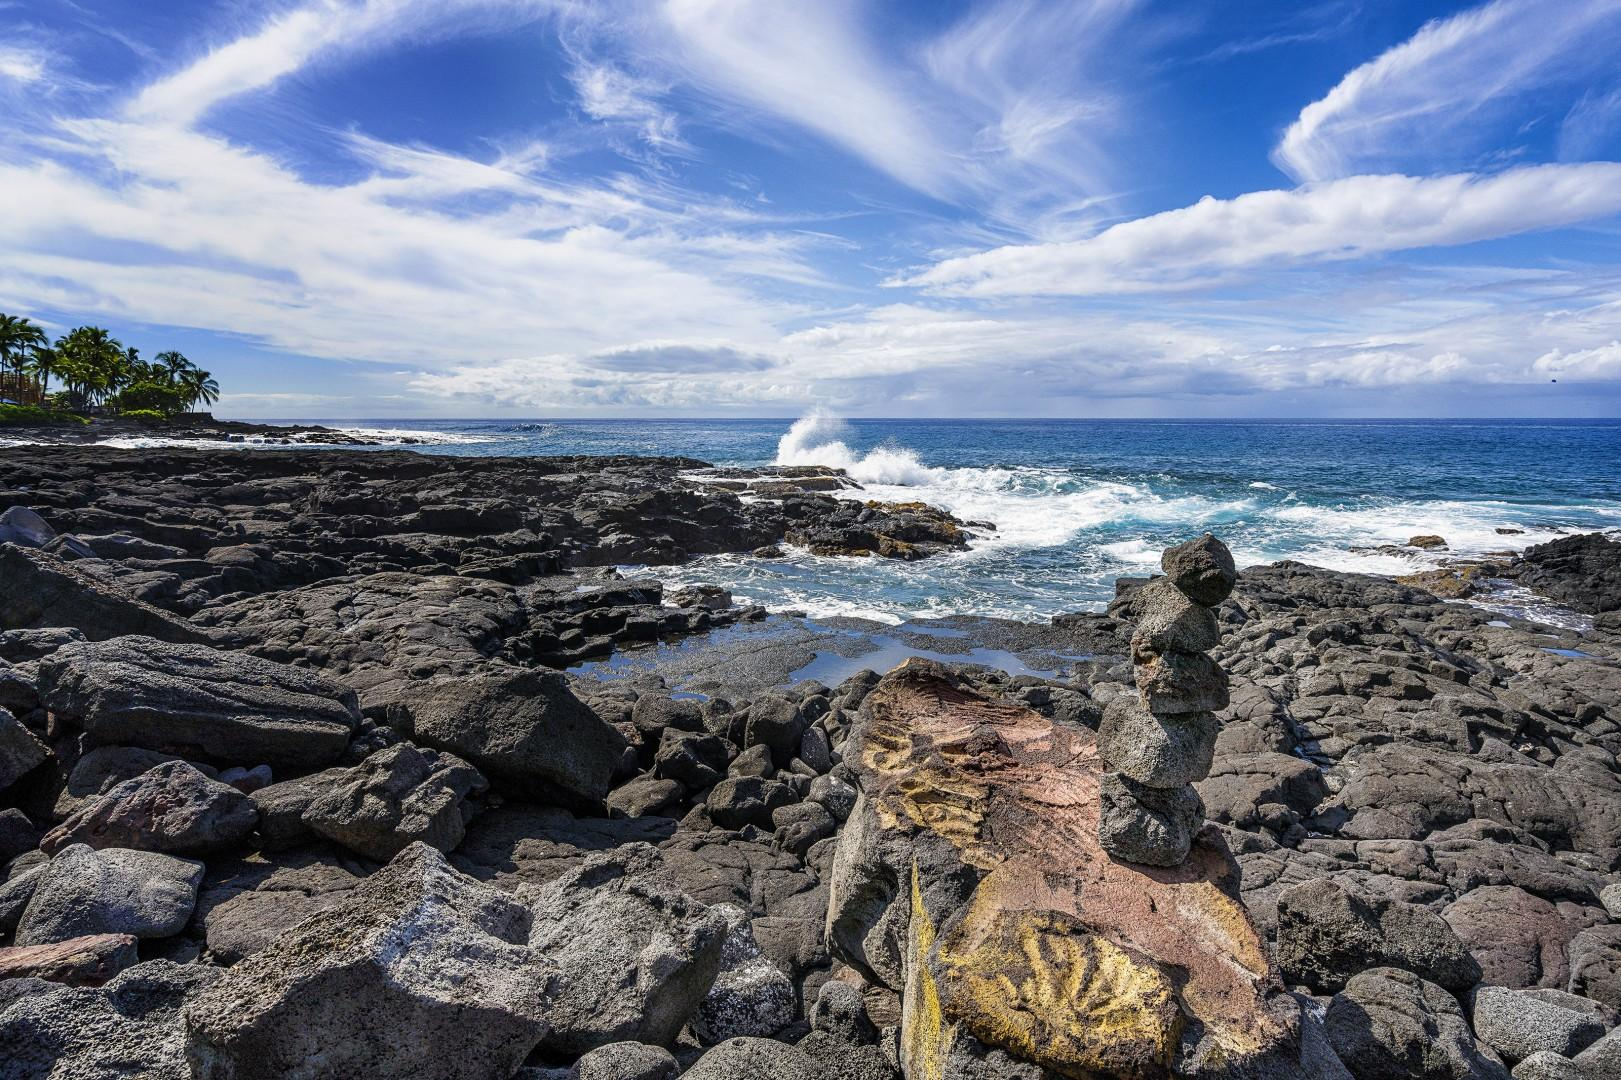 Oceanfront rock outcropping